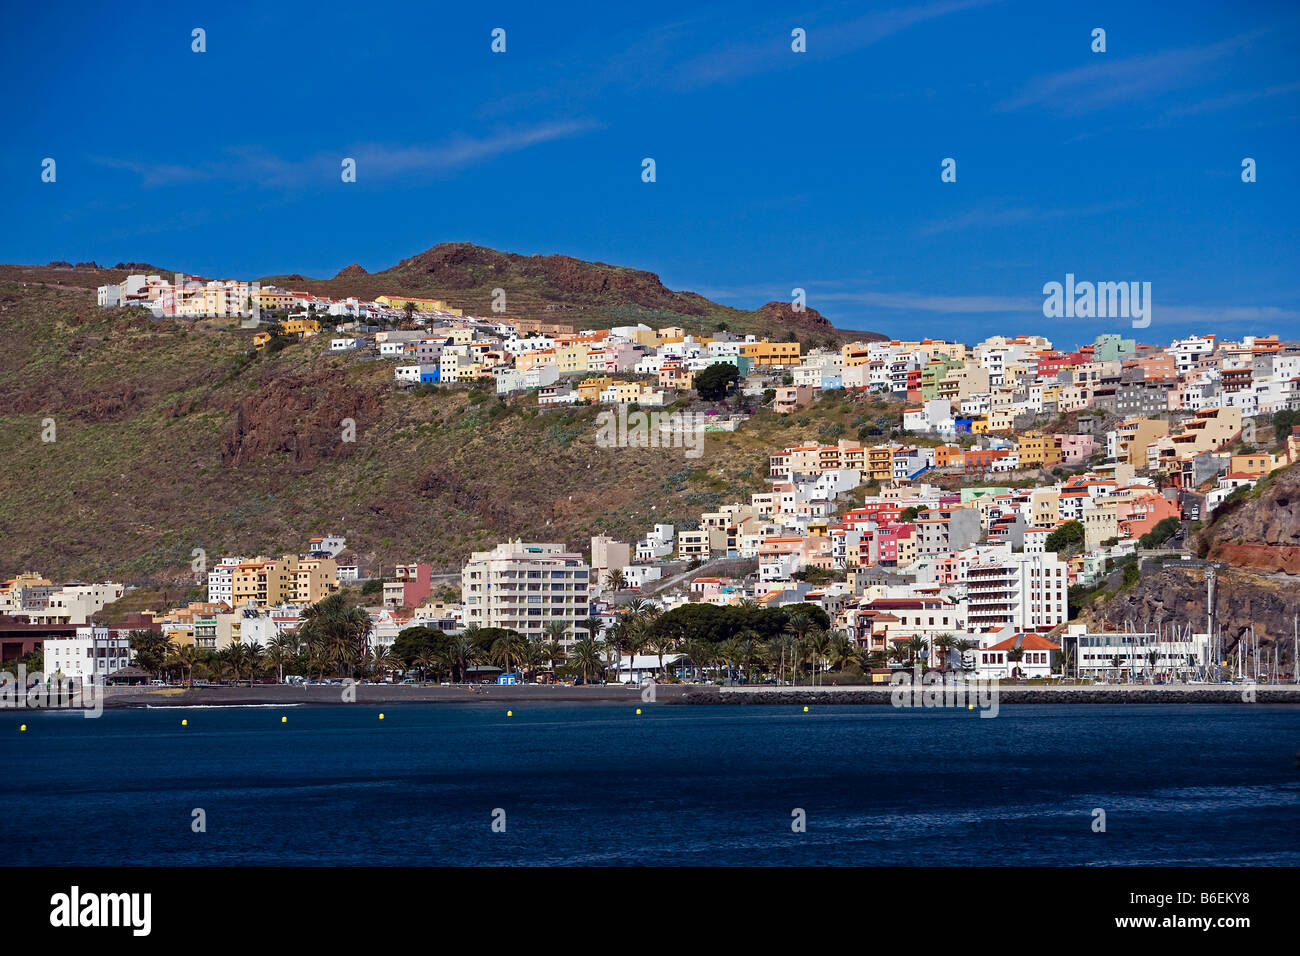 Spain, Canary Islands, La Gomera Island. Port and city of San Sebastian - Stock Image